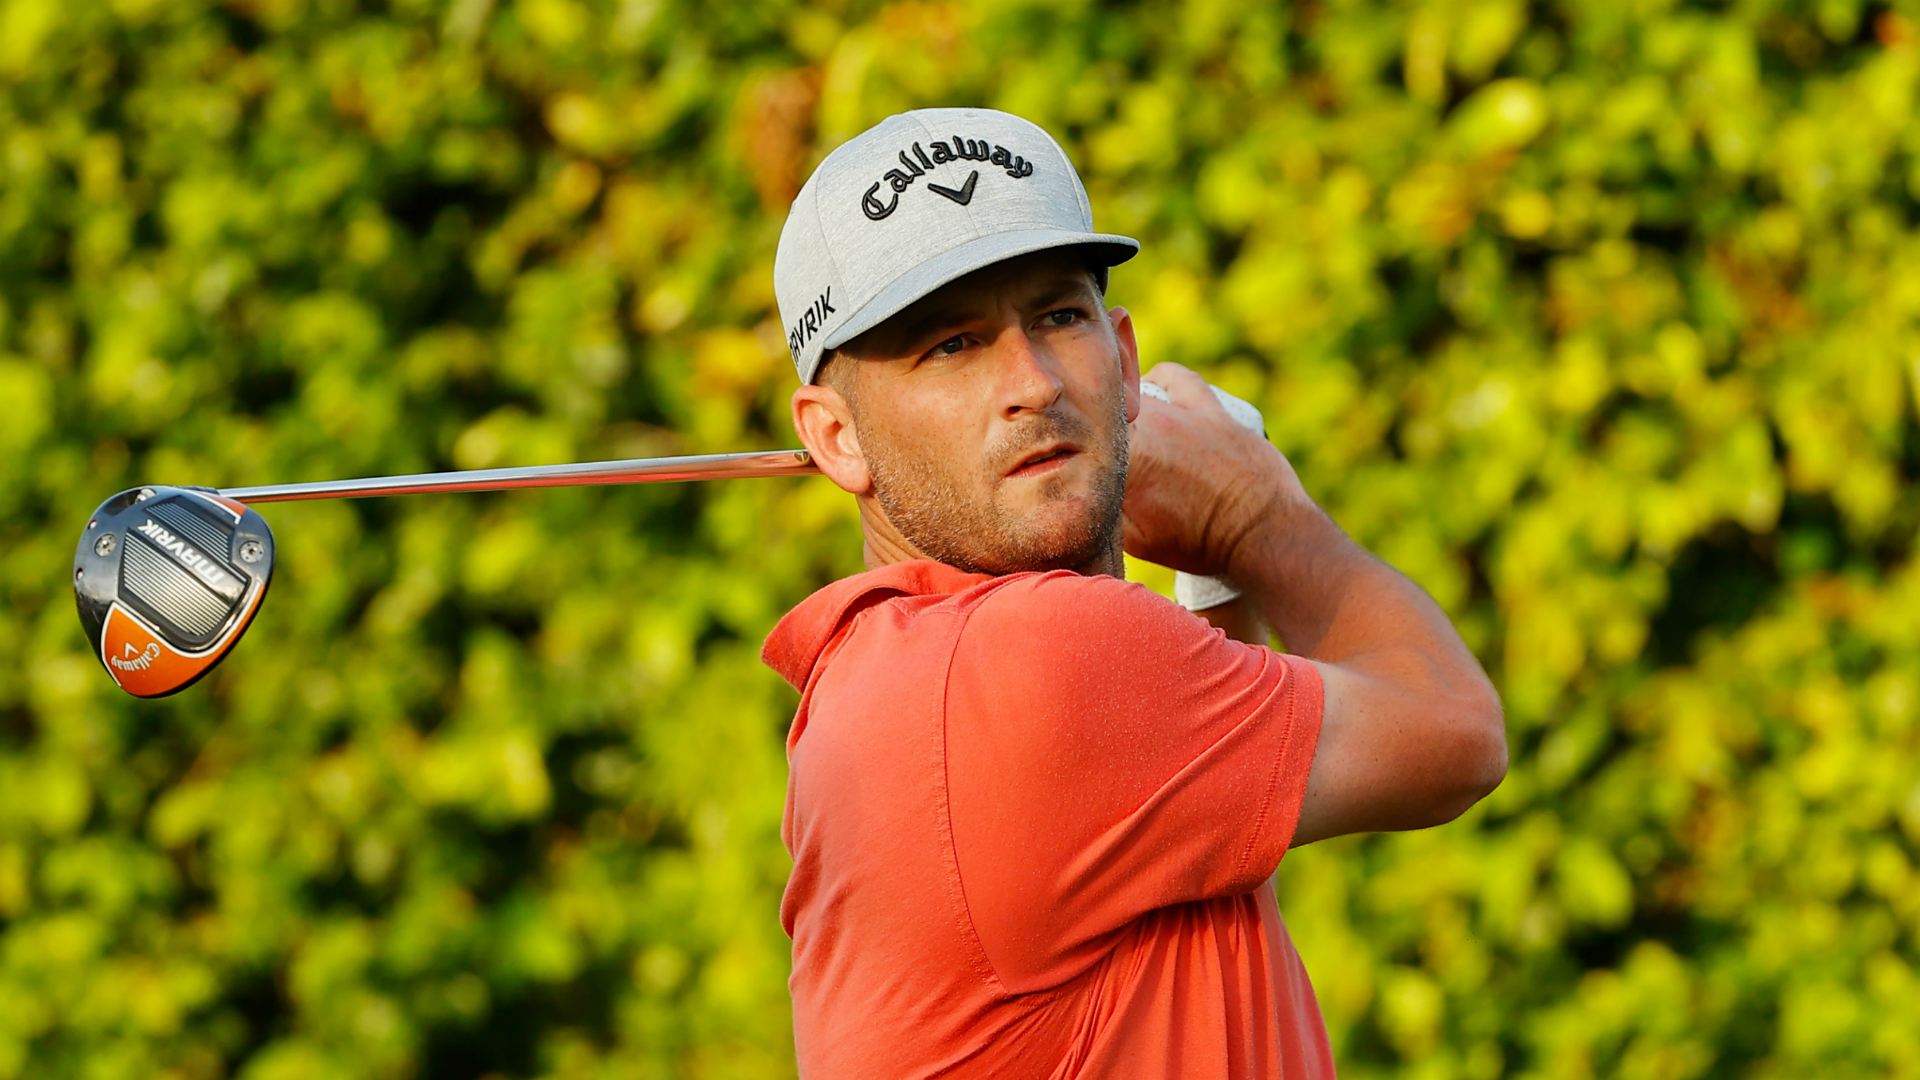 Every which way but straight - former Bay Hill champion has a second-round nightmare